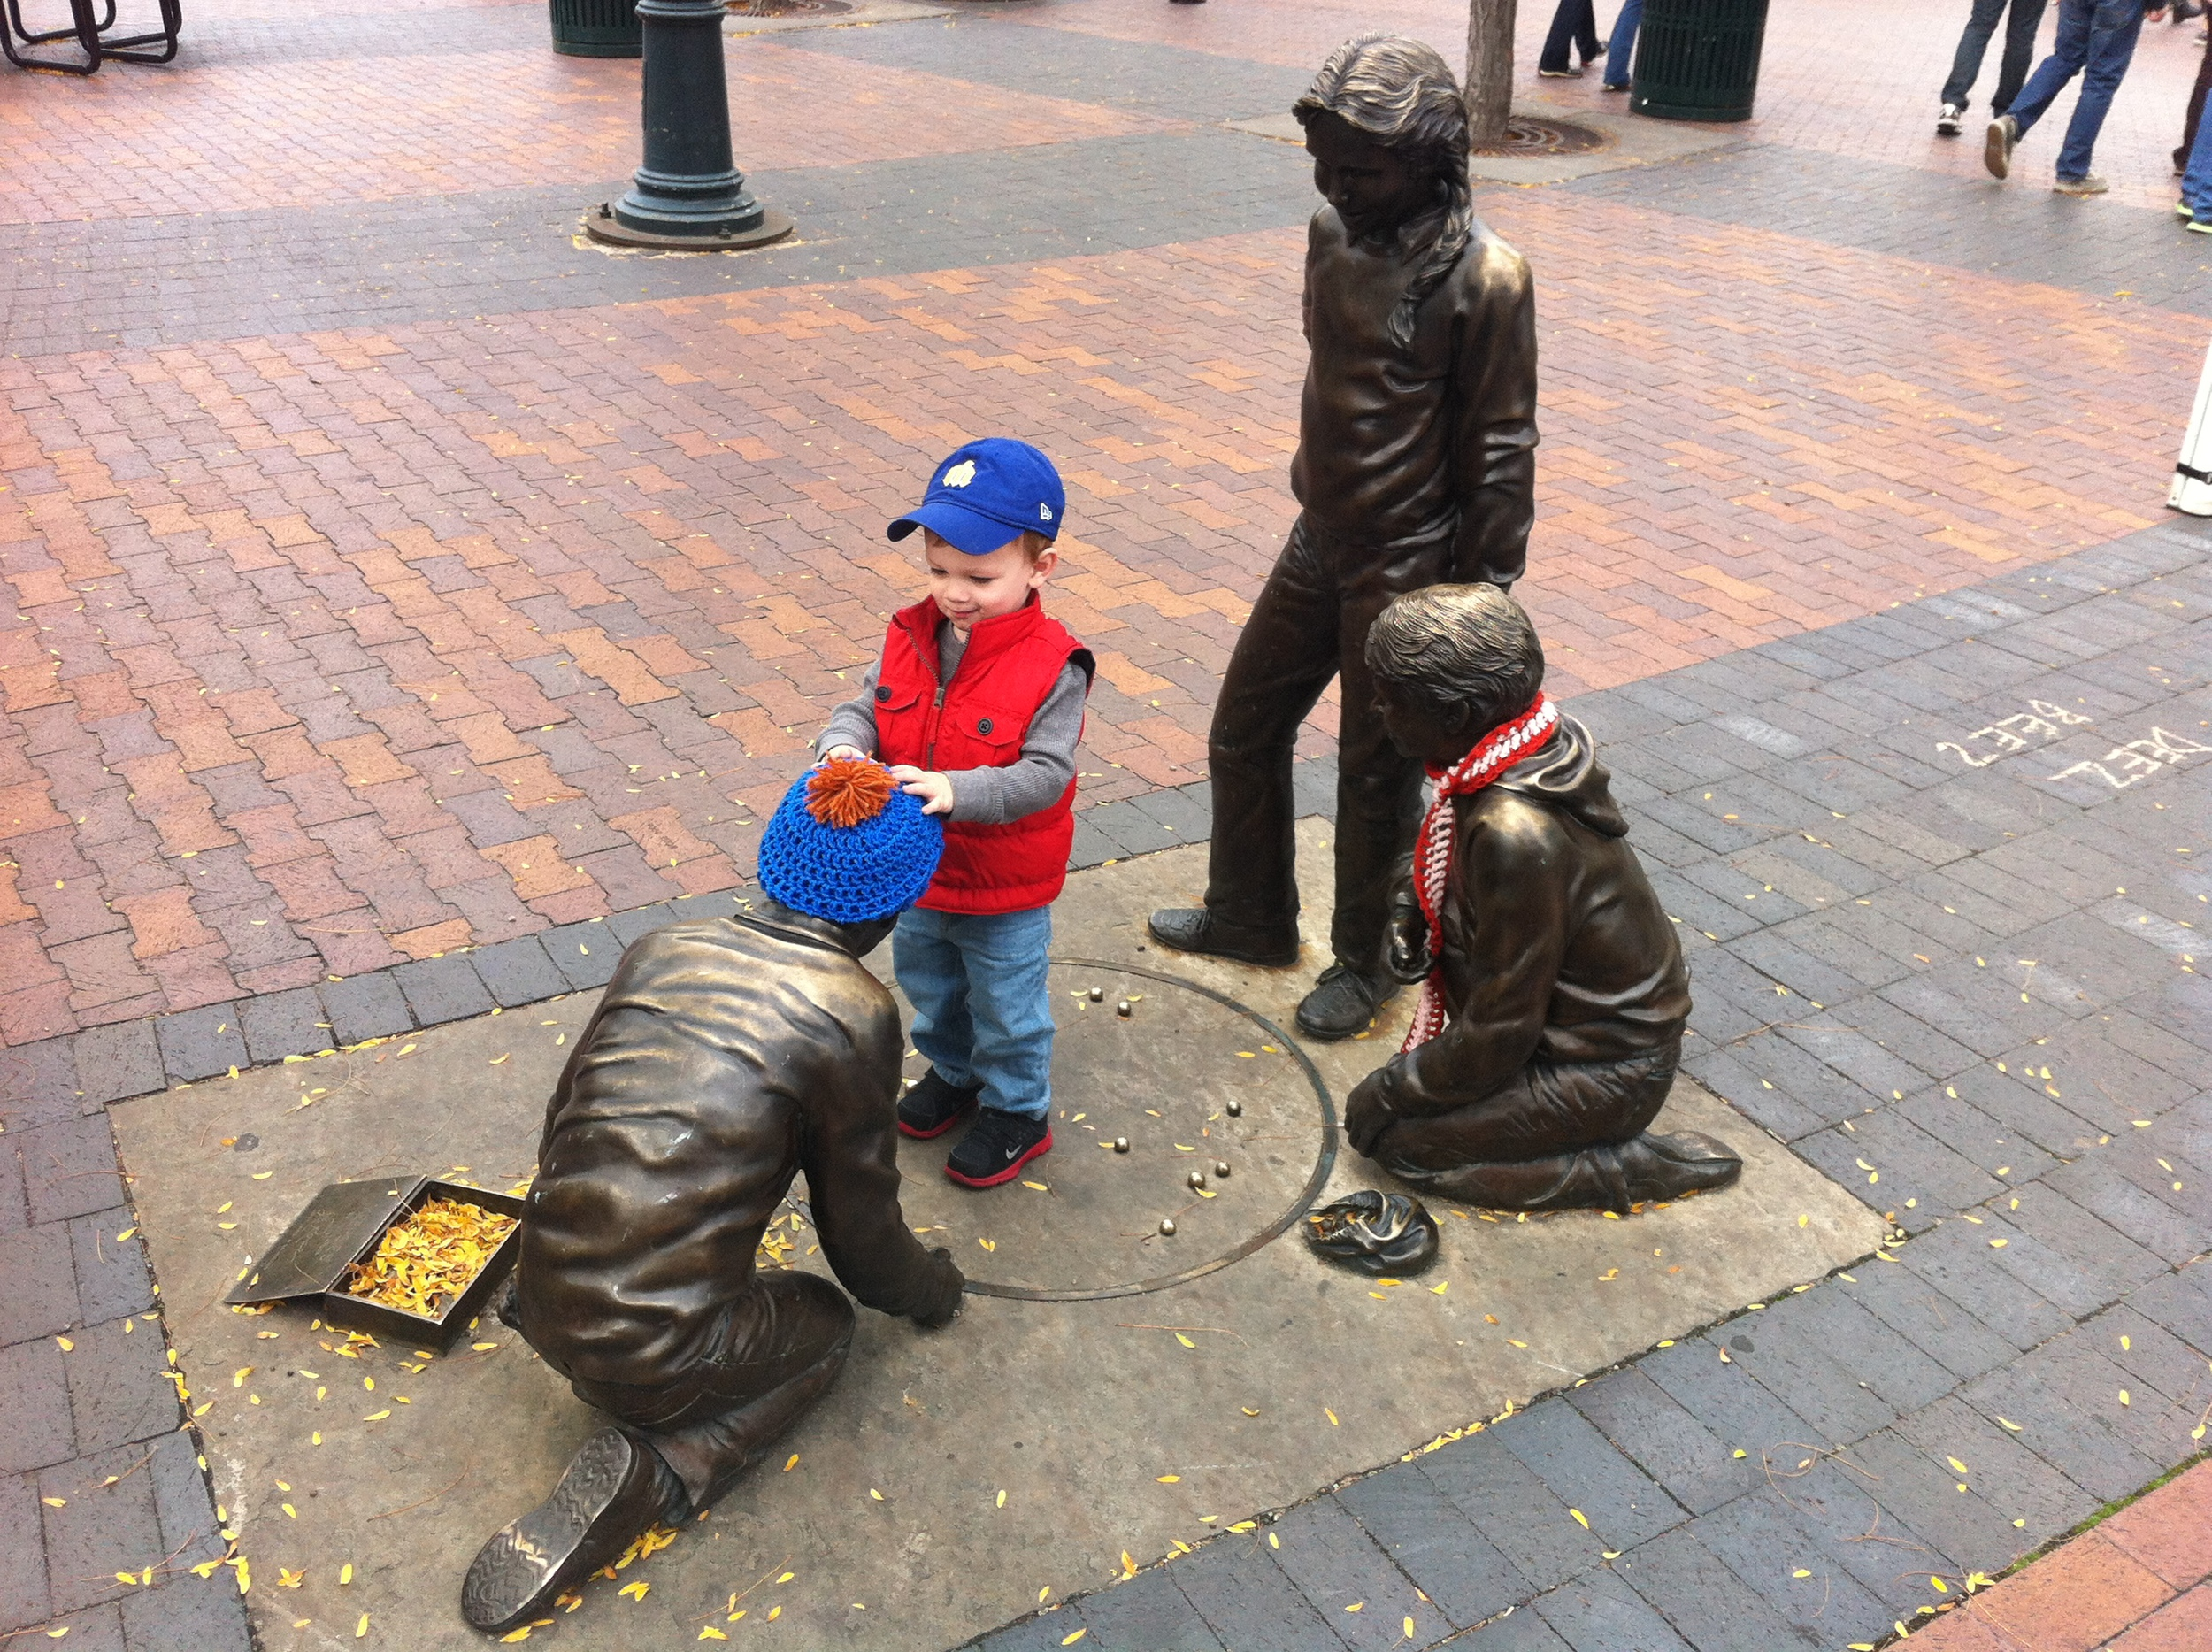 Found this little guy playing witha piece of public art depicting children playing marbles. Urban playgrounds should appeal to people of all ages and backgrounds. It isn't just about the restaurants, shops, festivals, museums, attractions and performing arts.